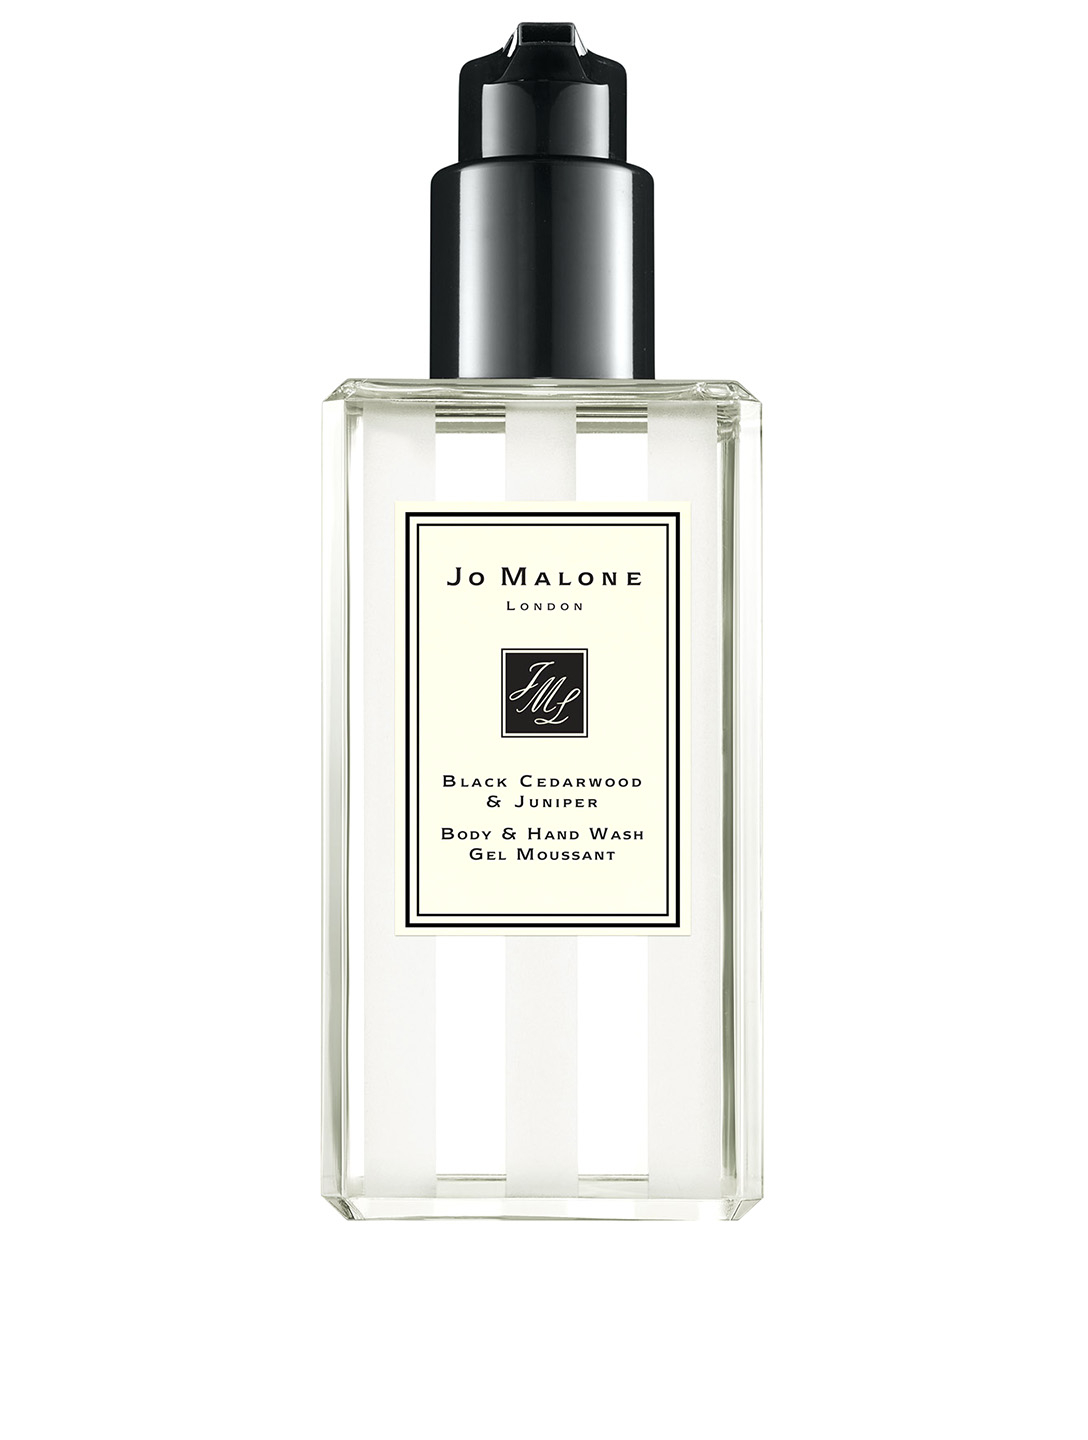 JO MALONE LONDON Black Cedarwood & Juniper Body & Hand Wash Beauty